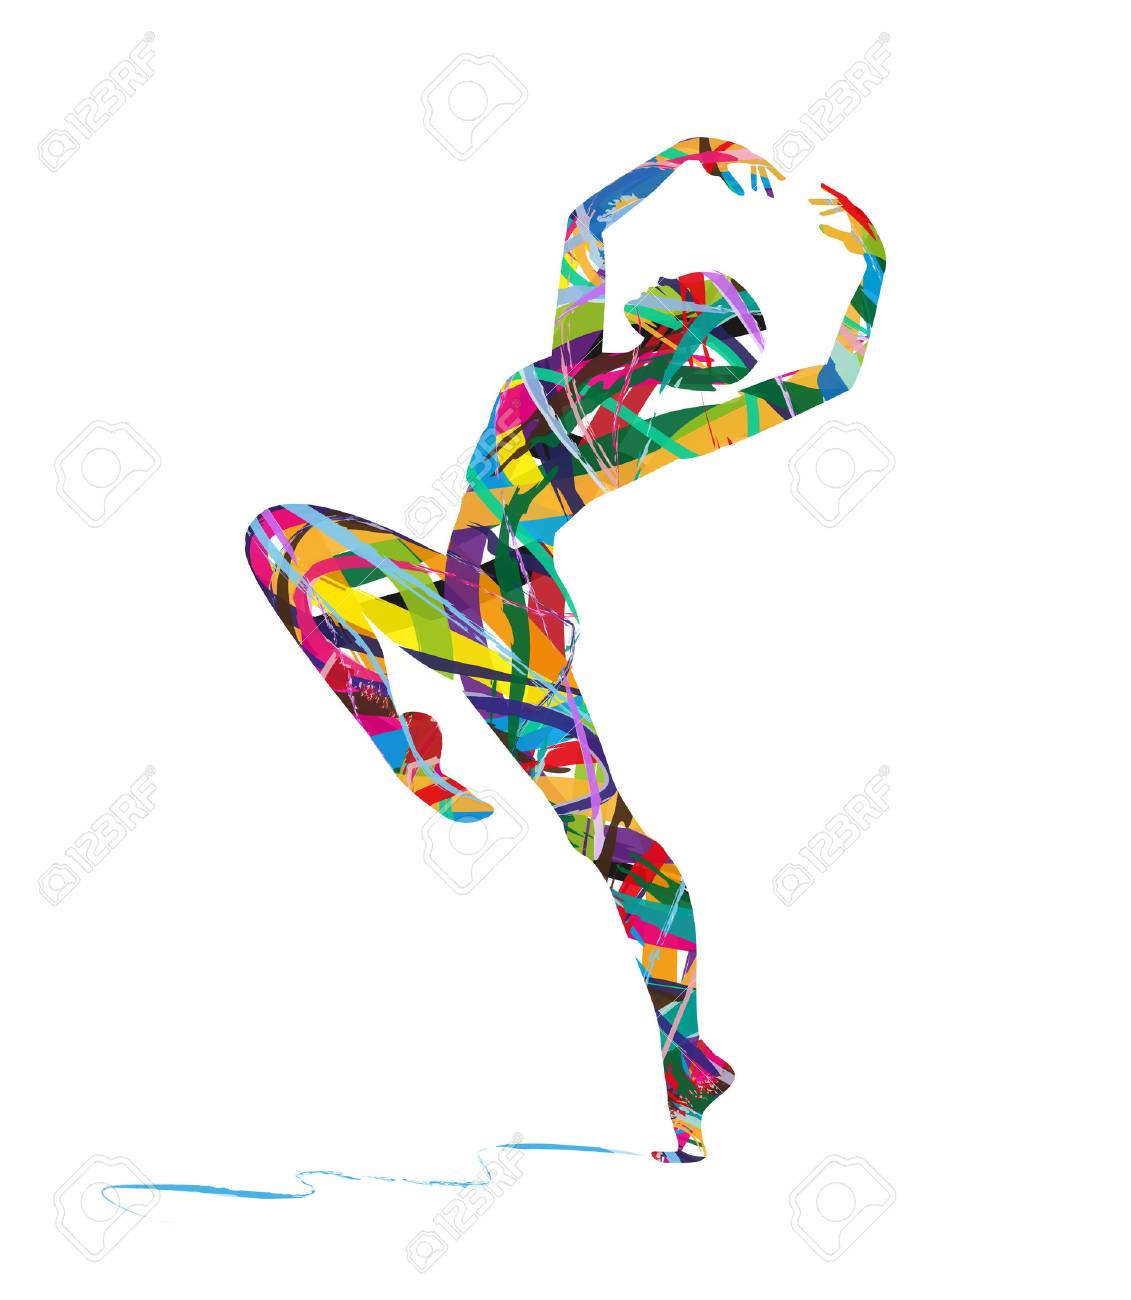 abstract dancer silhouette - 40812039